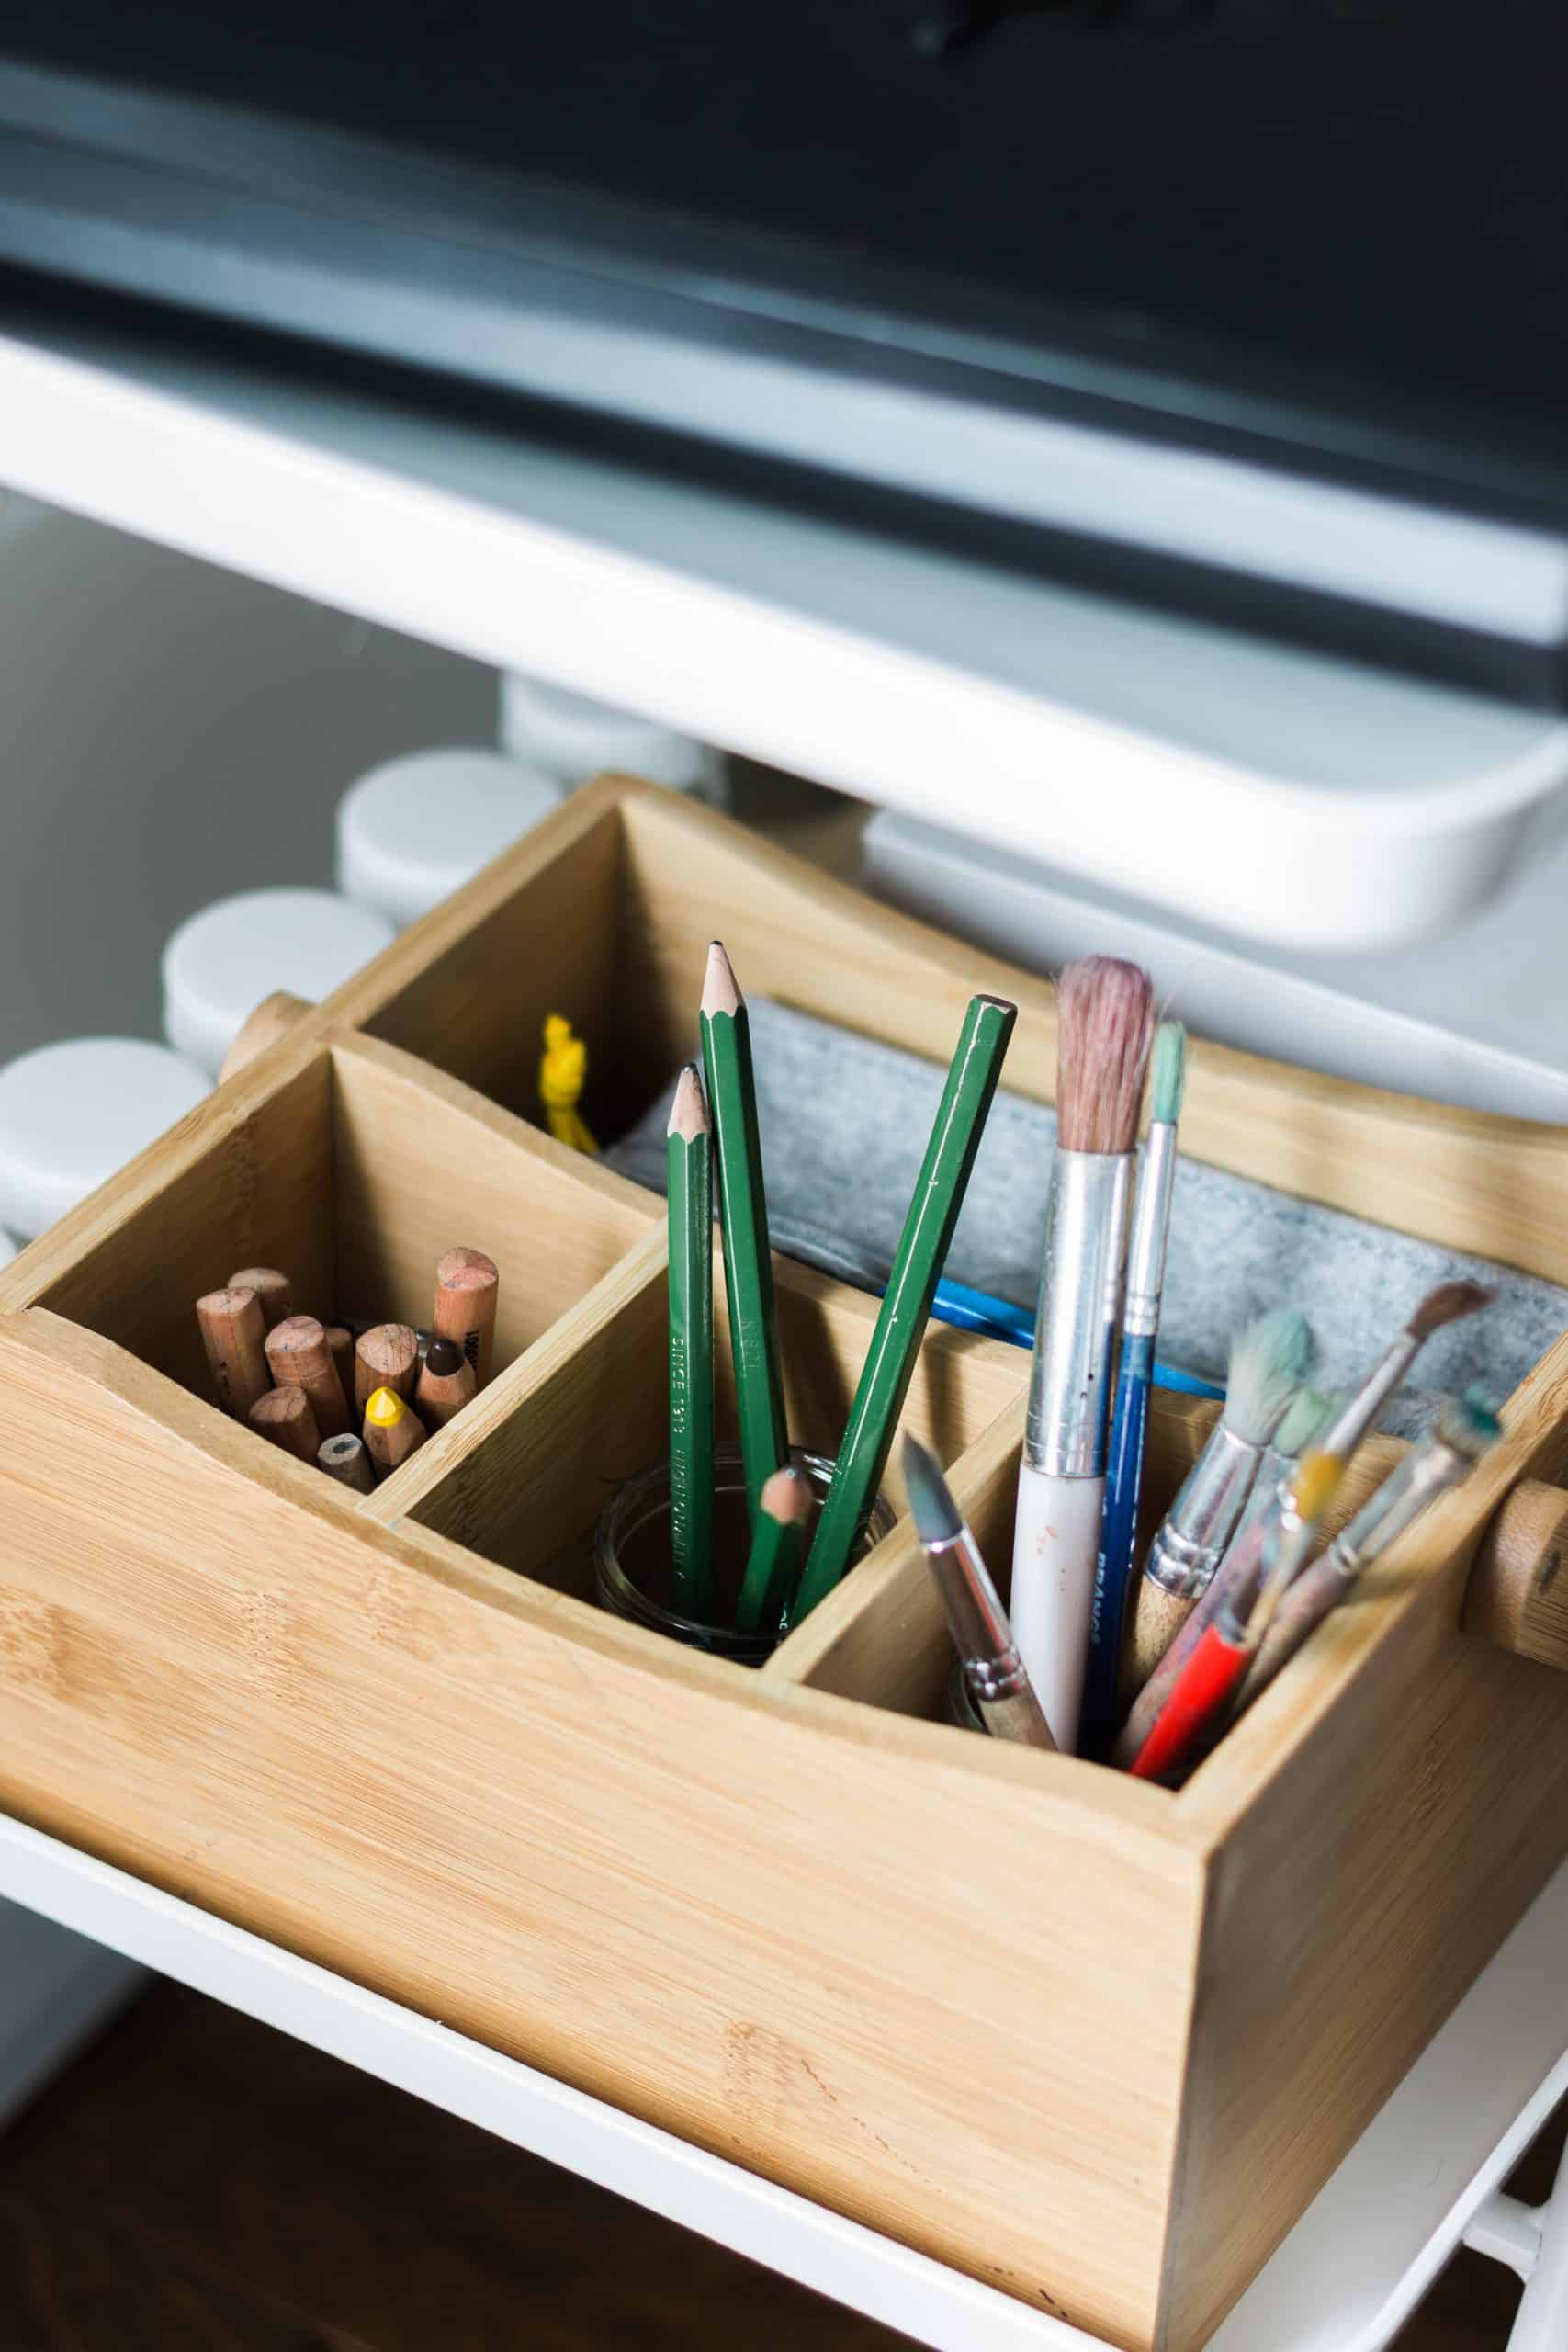 A bamboo storage caddy holds a variety of pencils, paintbrushes, and beeswax crayons along with other small bags to help keep art supplies and materials neatly organized.